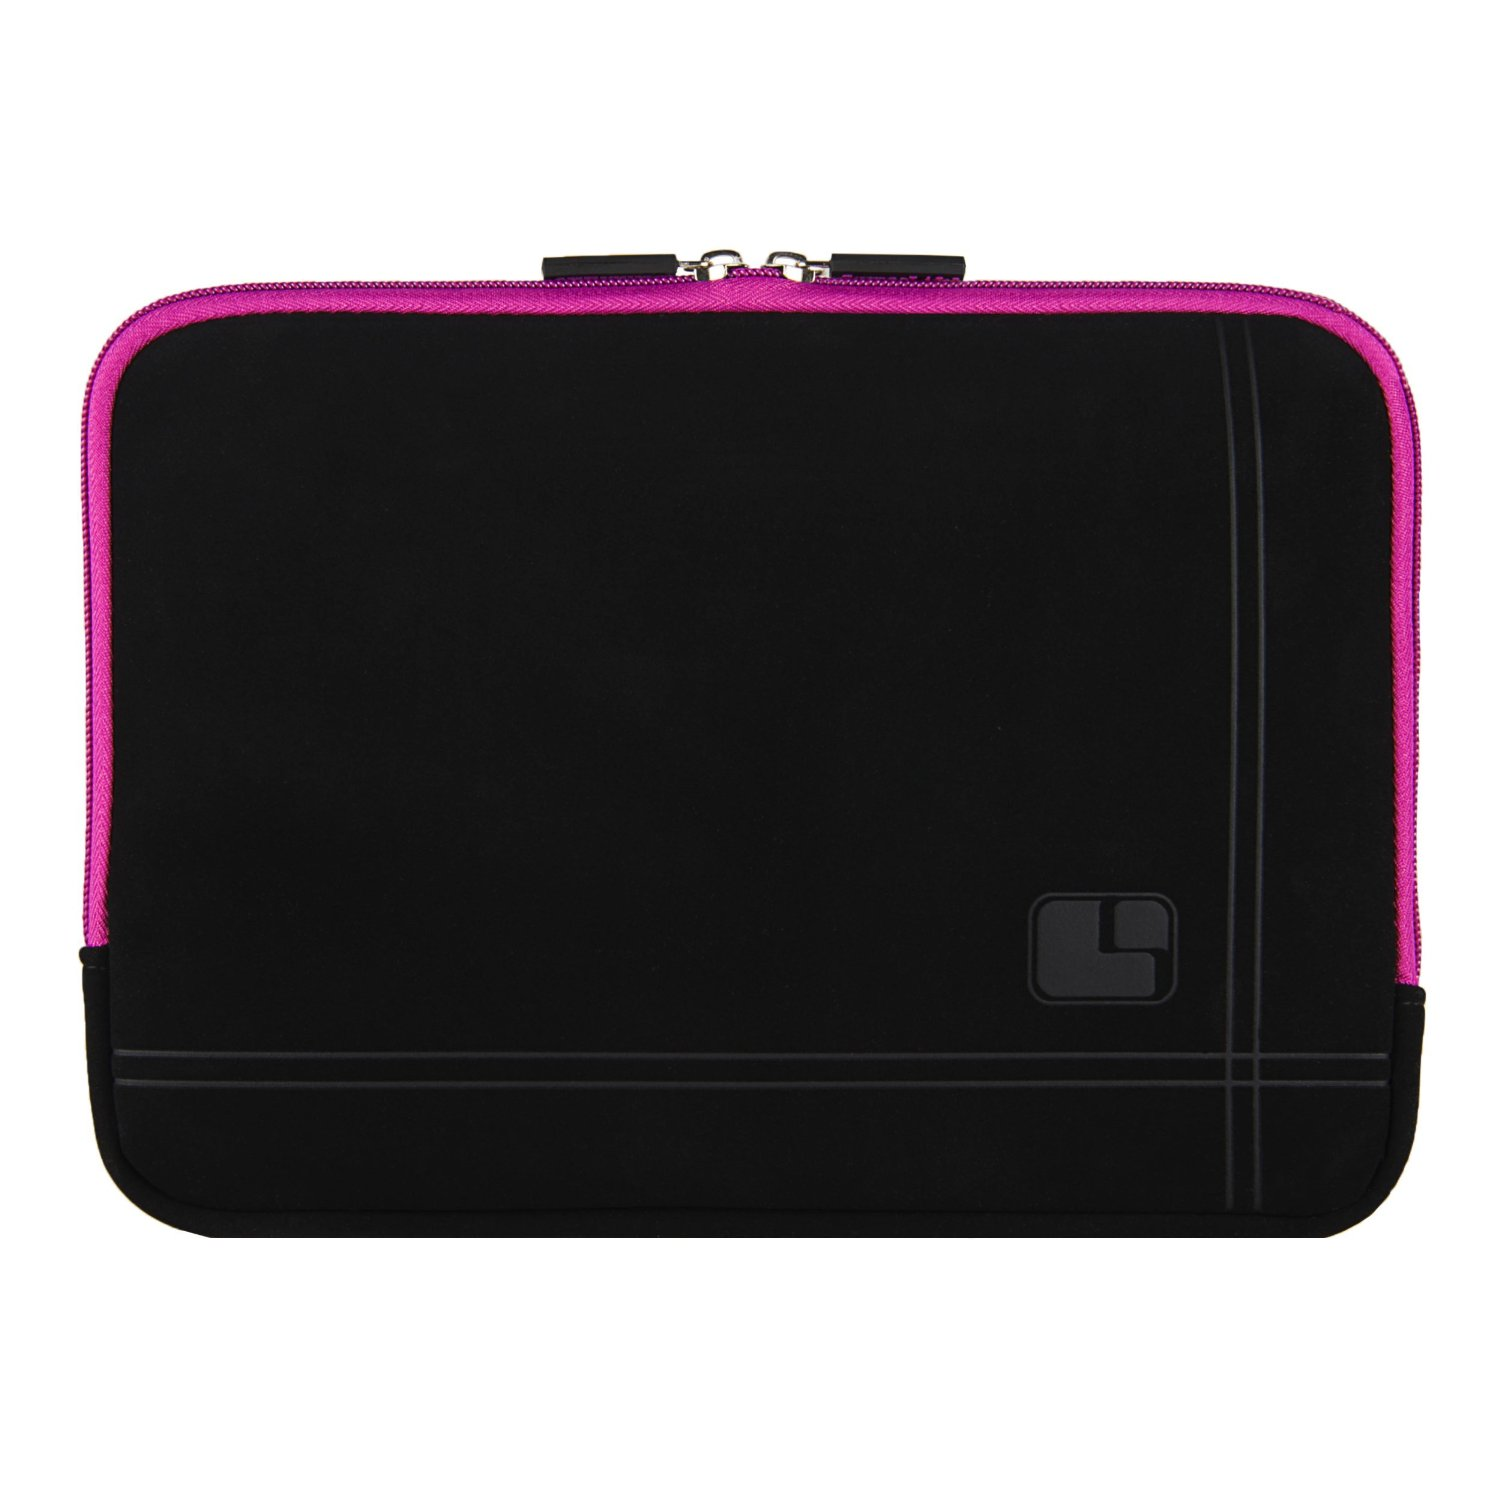 "Sumaclife 15"" Microsuede Hybrid Padded Sleeve Pouch Case [Purple] for HP 14 15.6 Inch Laptop (Envy x2 